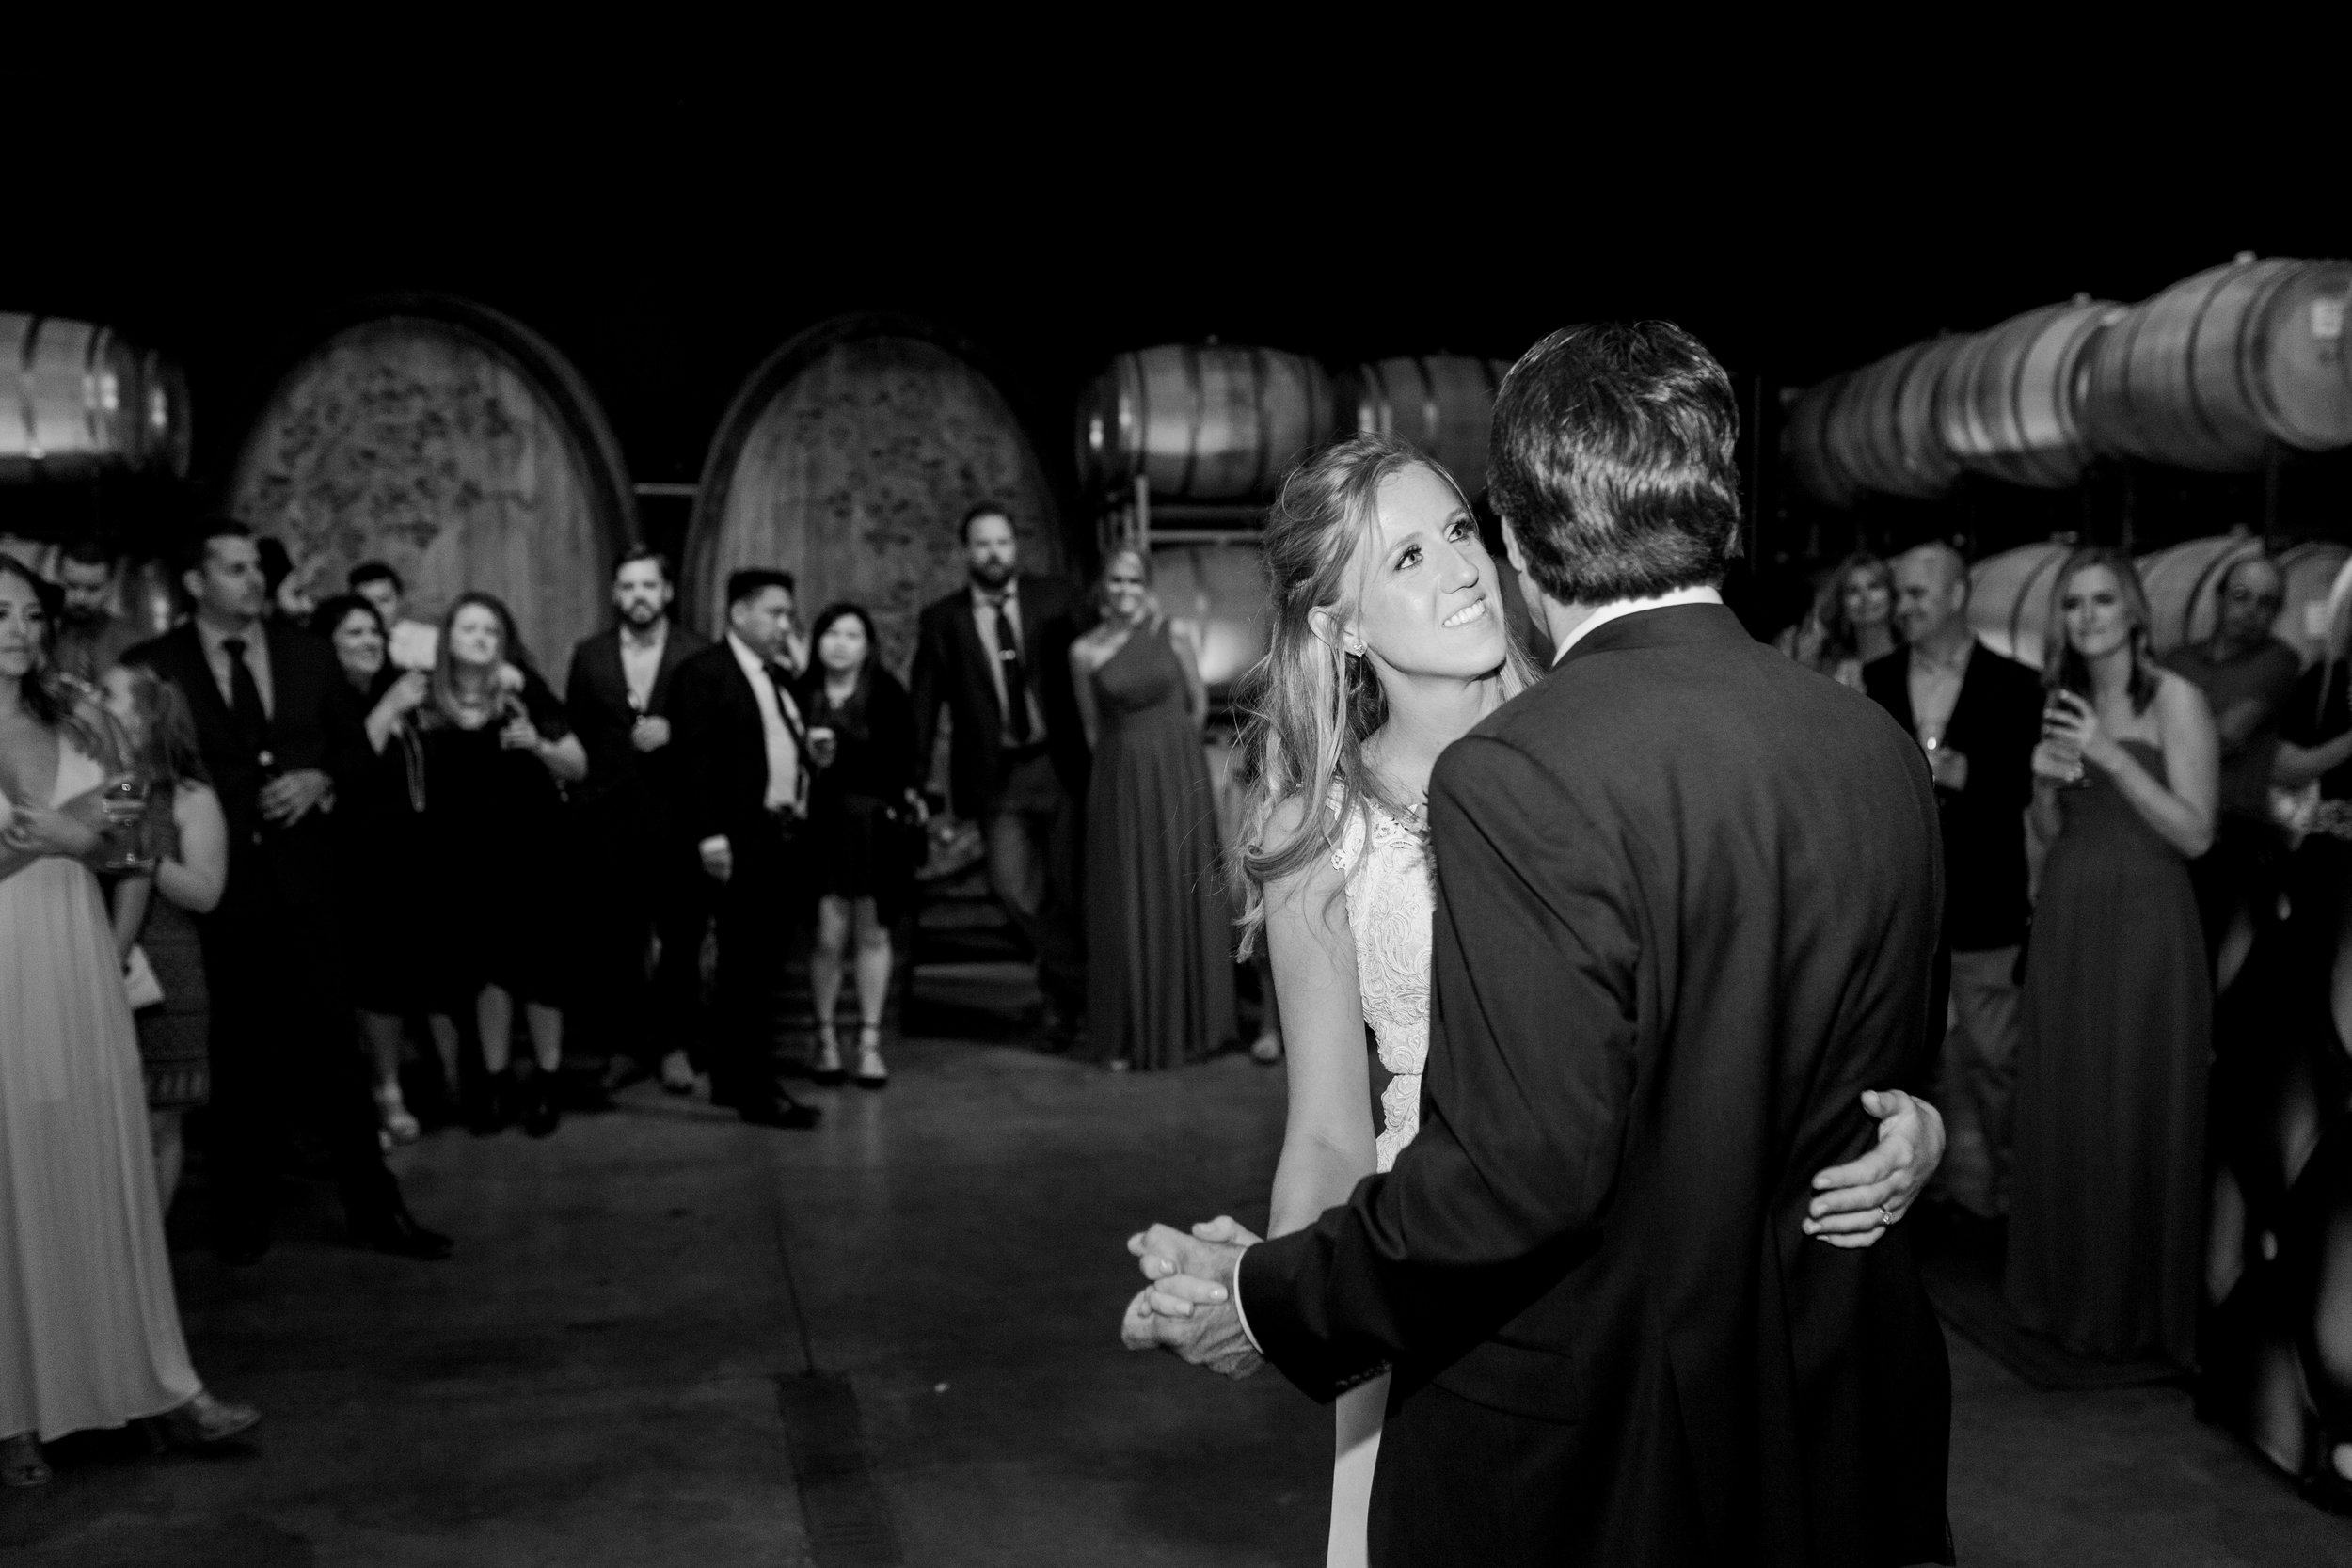 crooked-vine-winery-wedding-in-livermore-california-128.jpg